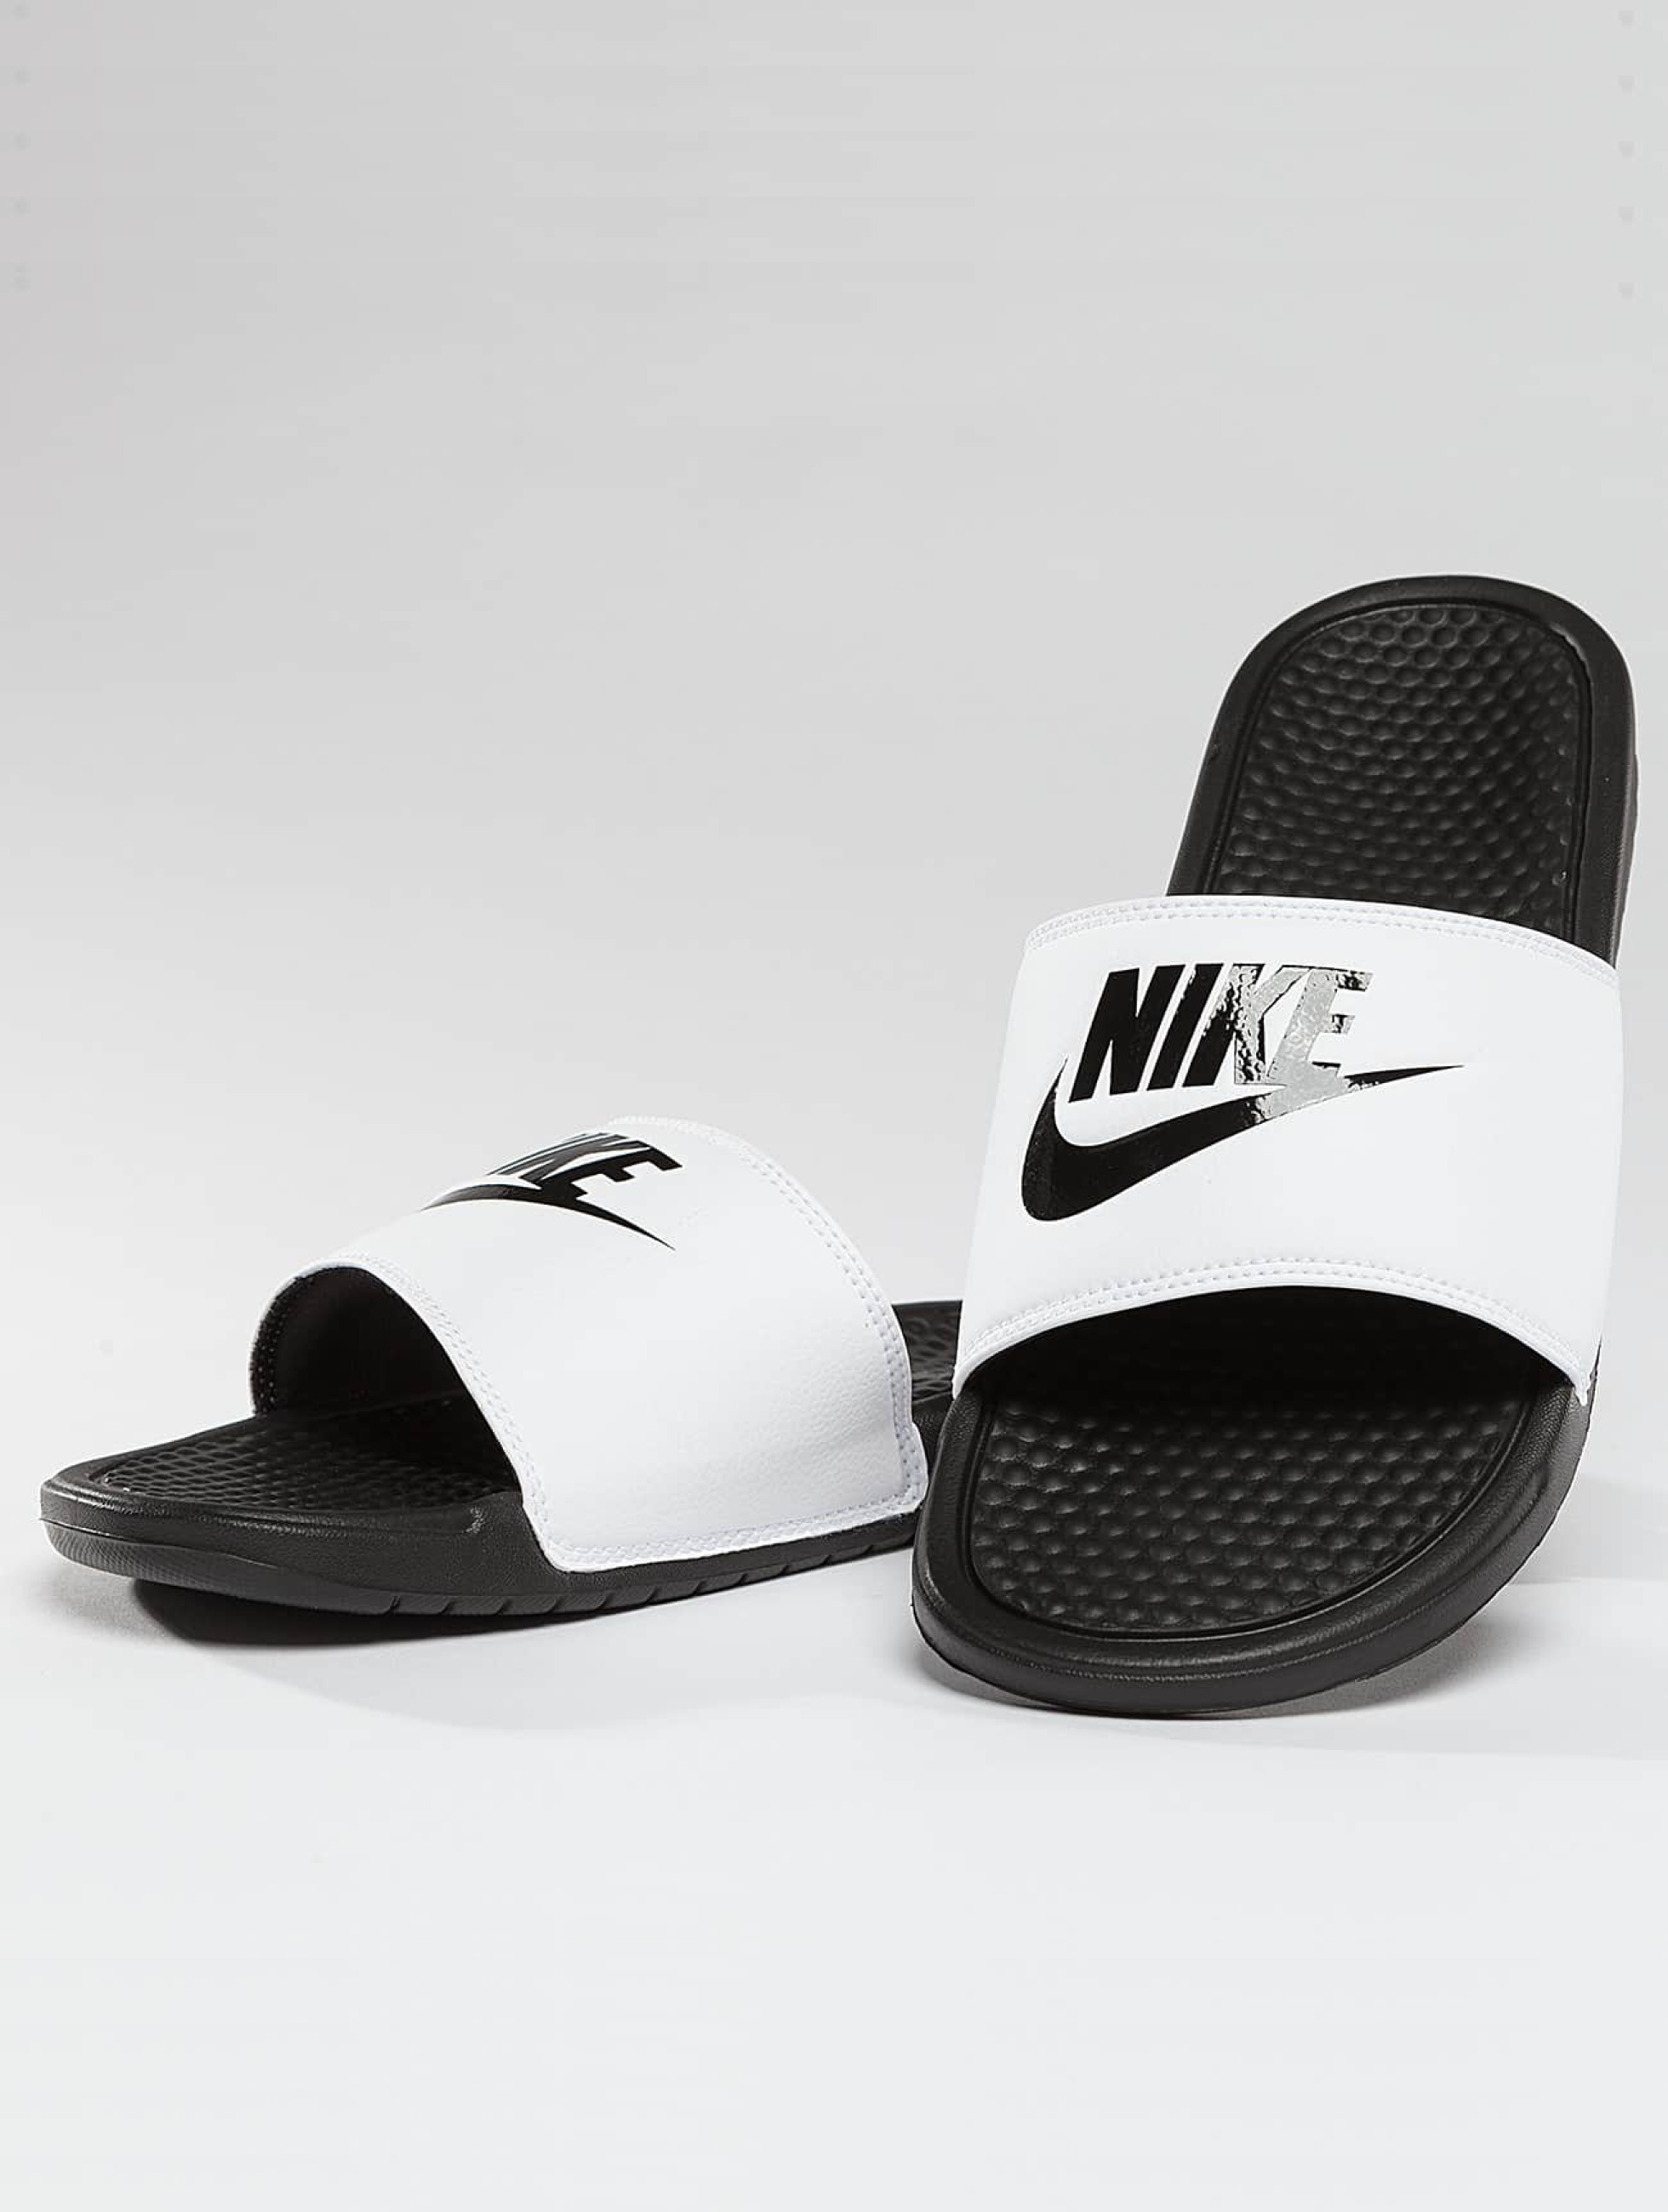 quality products many styles wide varieties Nike Benassi JDI Sandals White/Varsity Royal/White